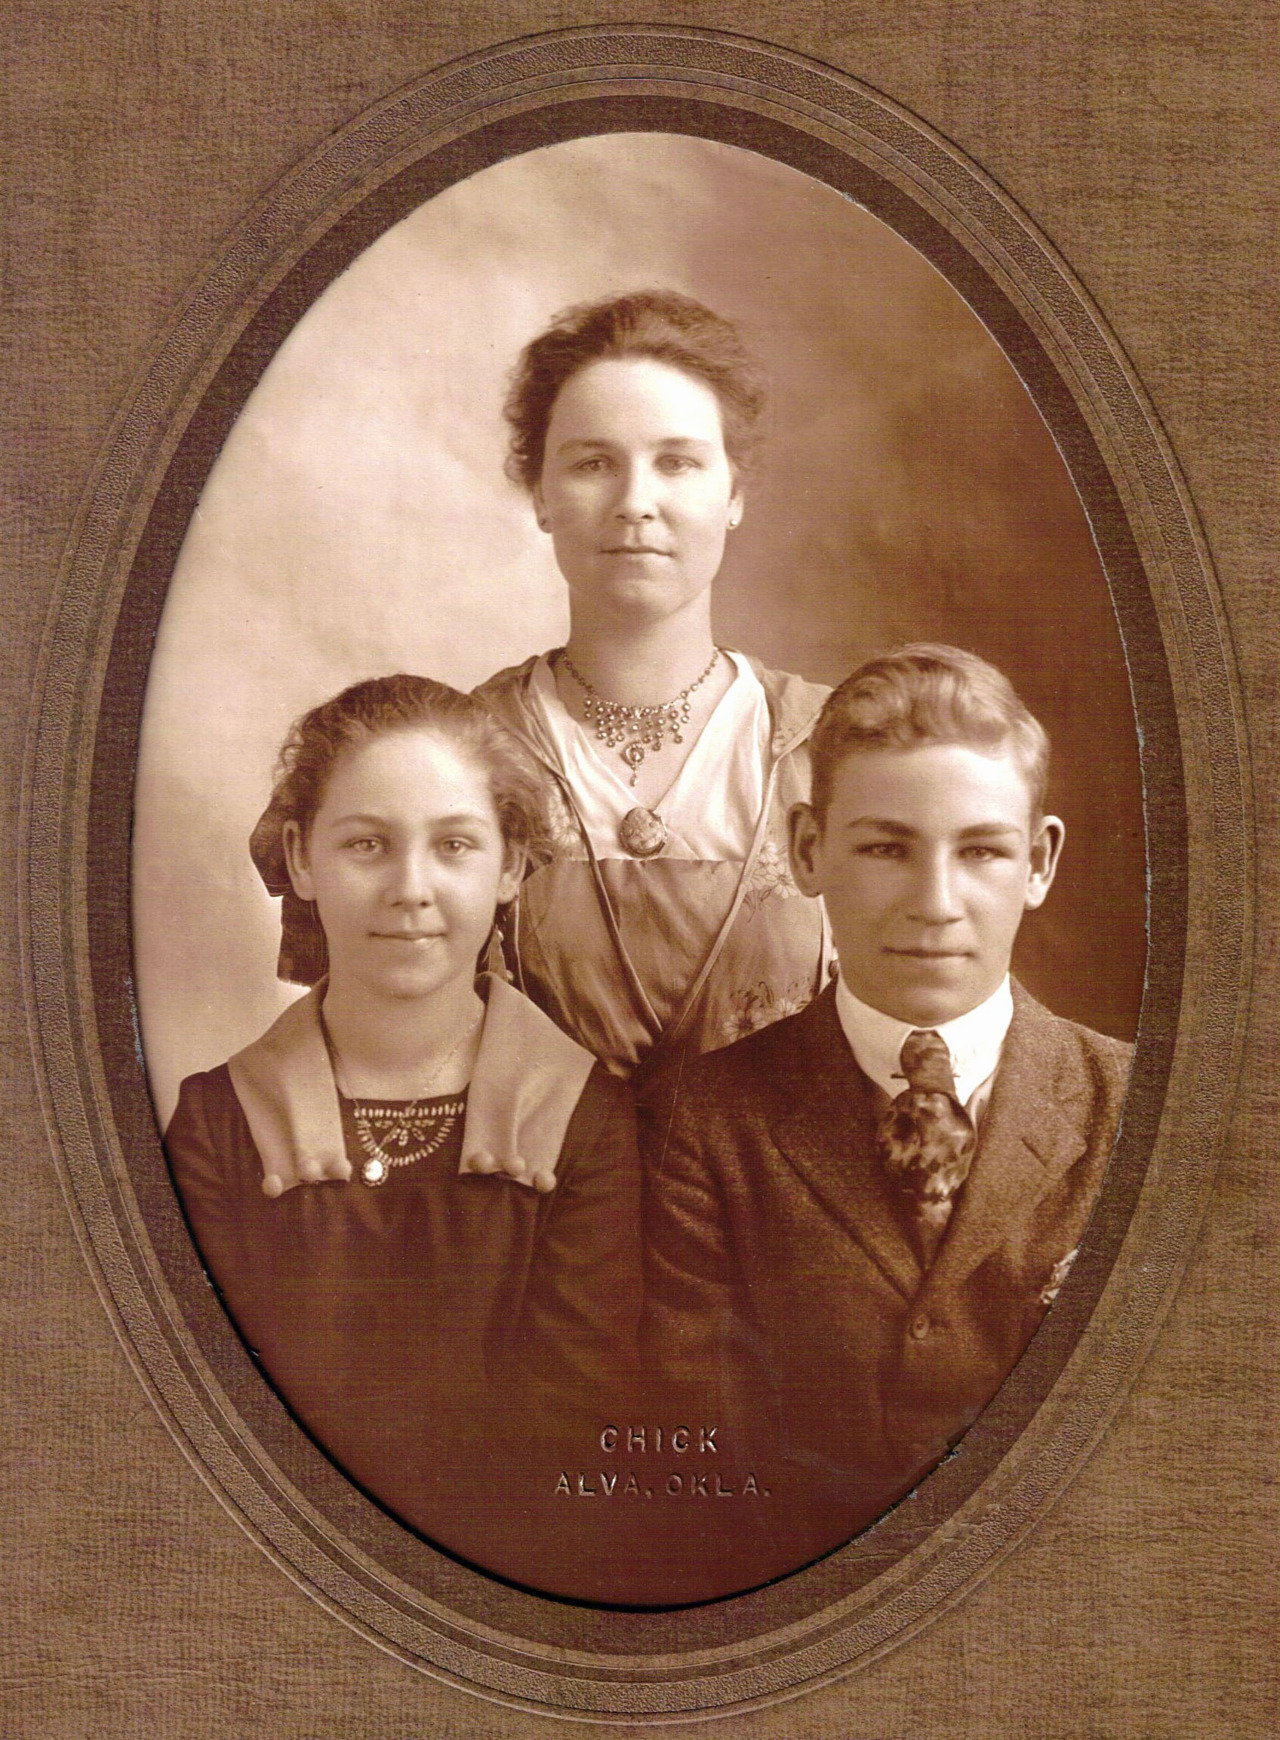 My great-grandmother Carrie Mae with my great-aunt Elsie and my grandfather Floyd. About 1912.